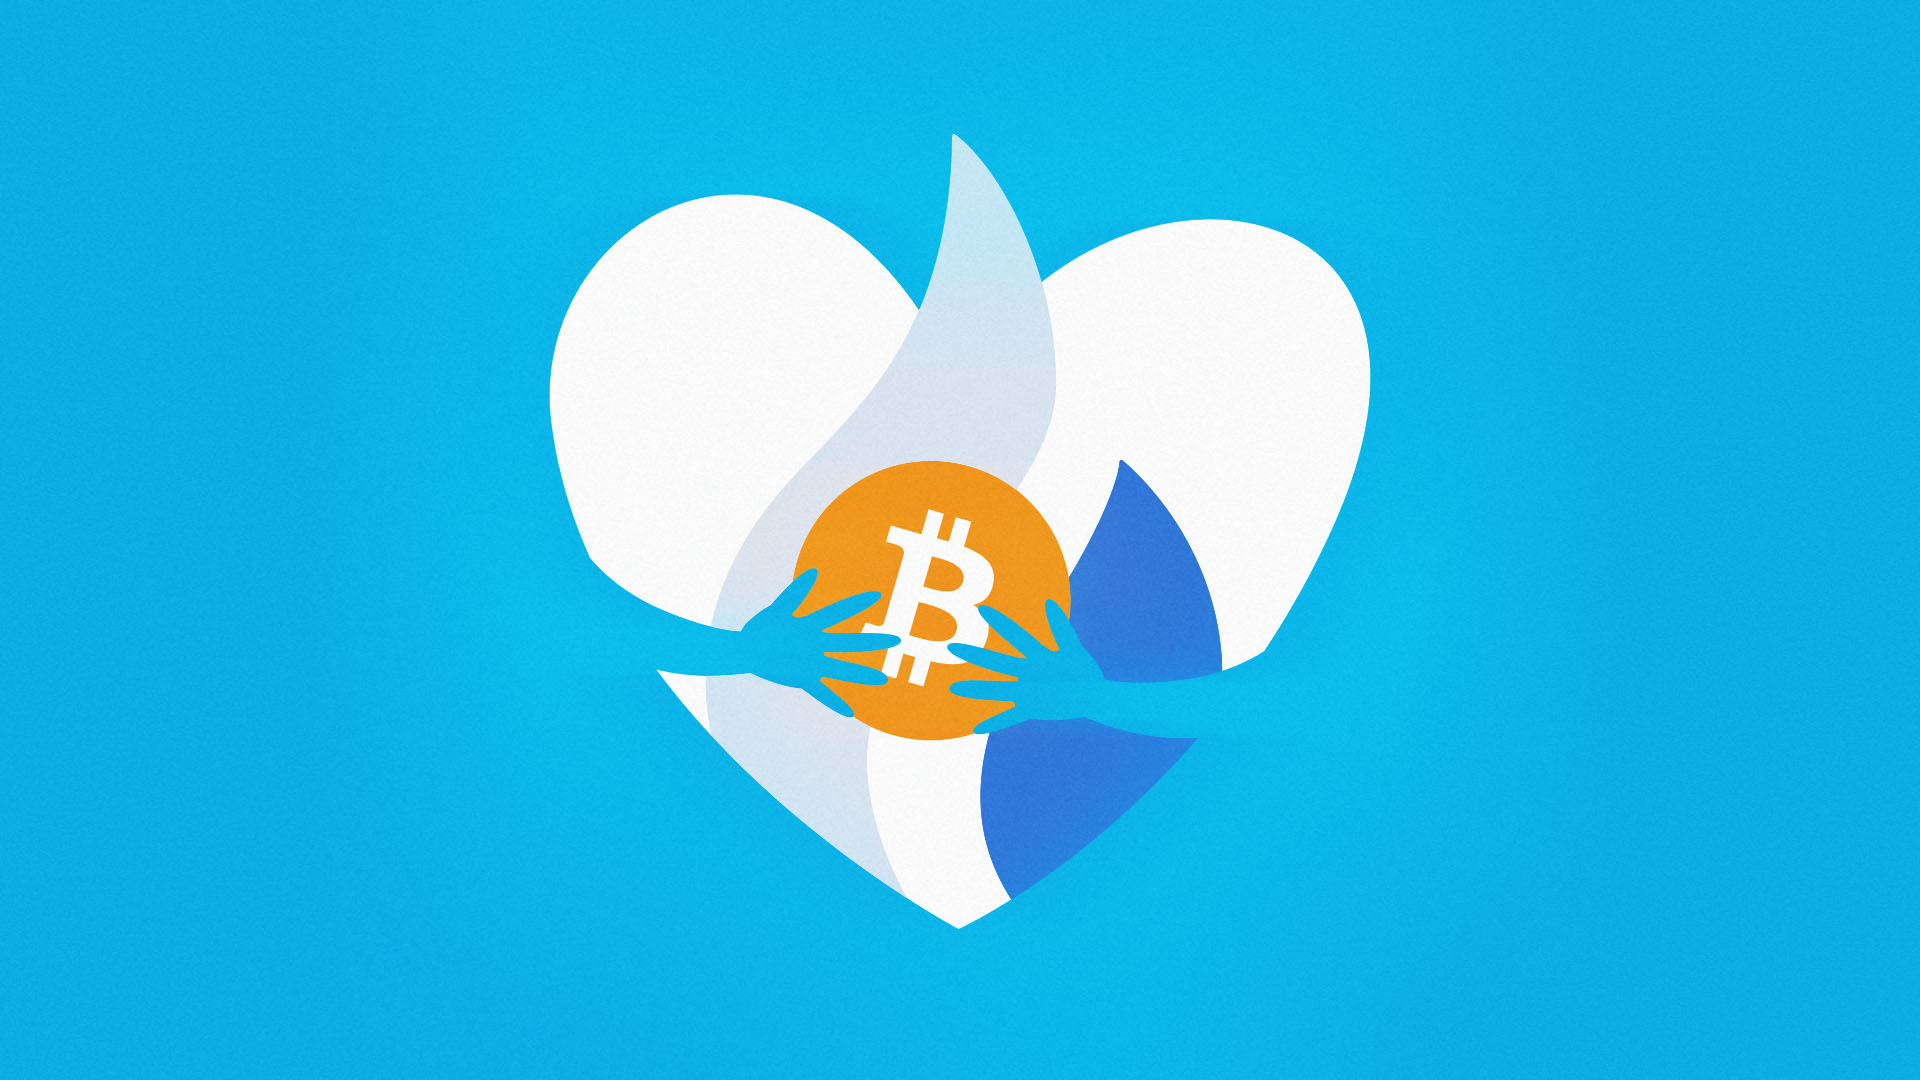 This is the UNICEF heart hugging Bitcoin because Huobi just donated 7 BTC.